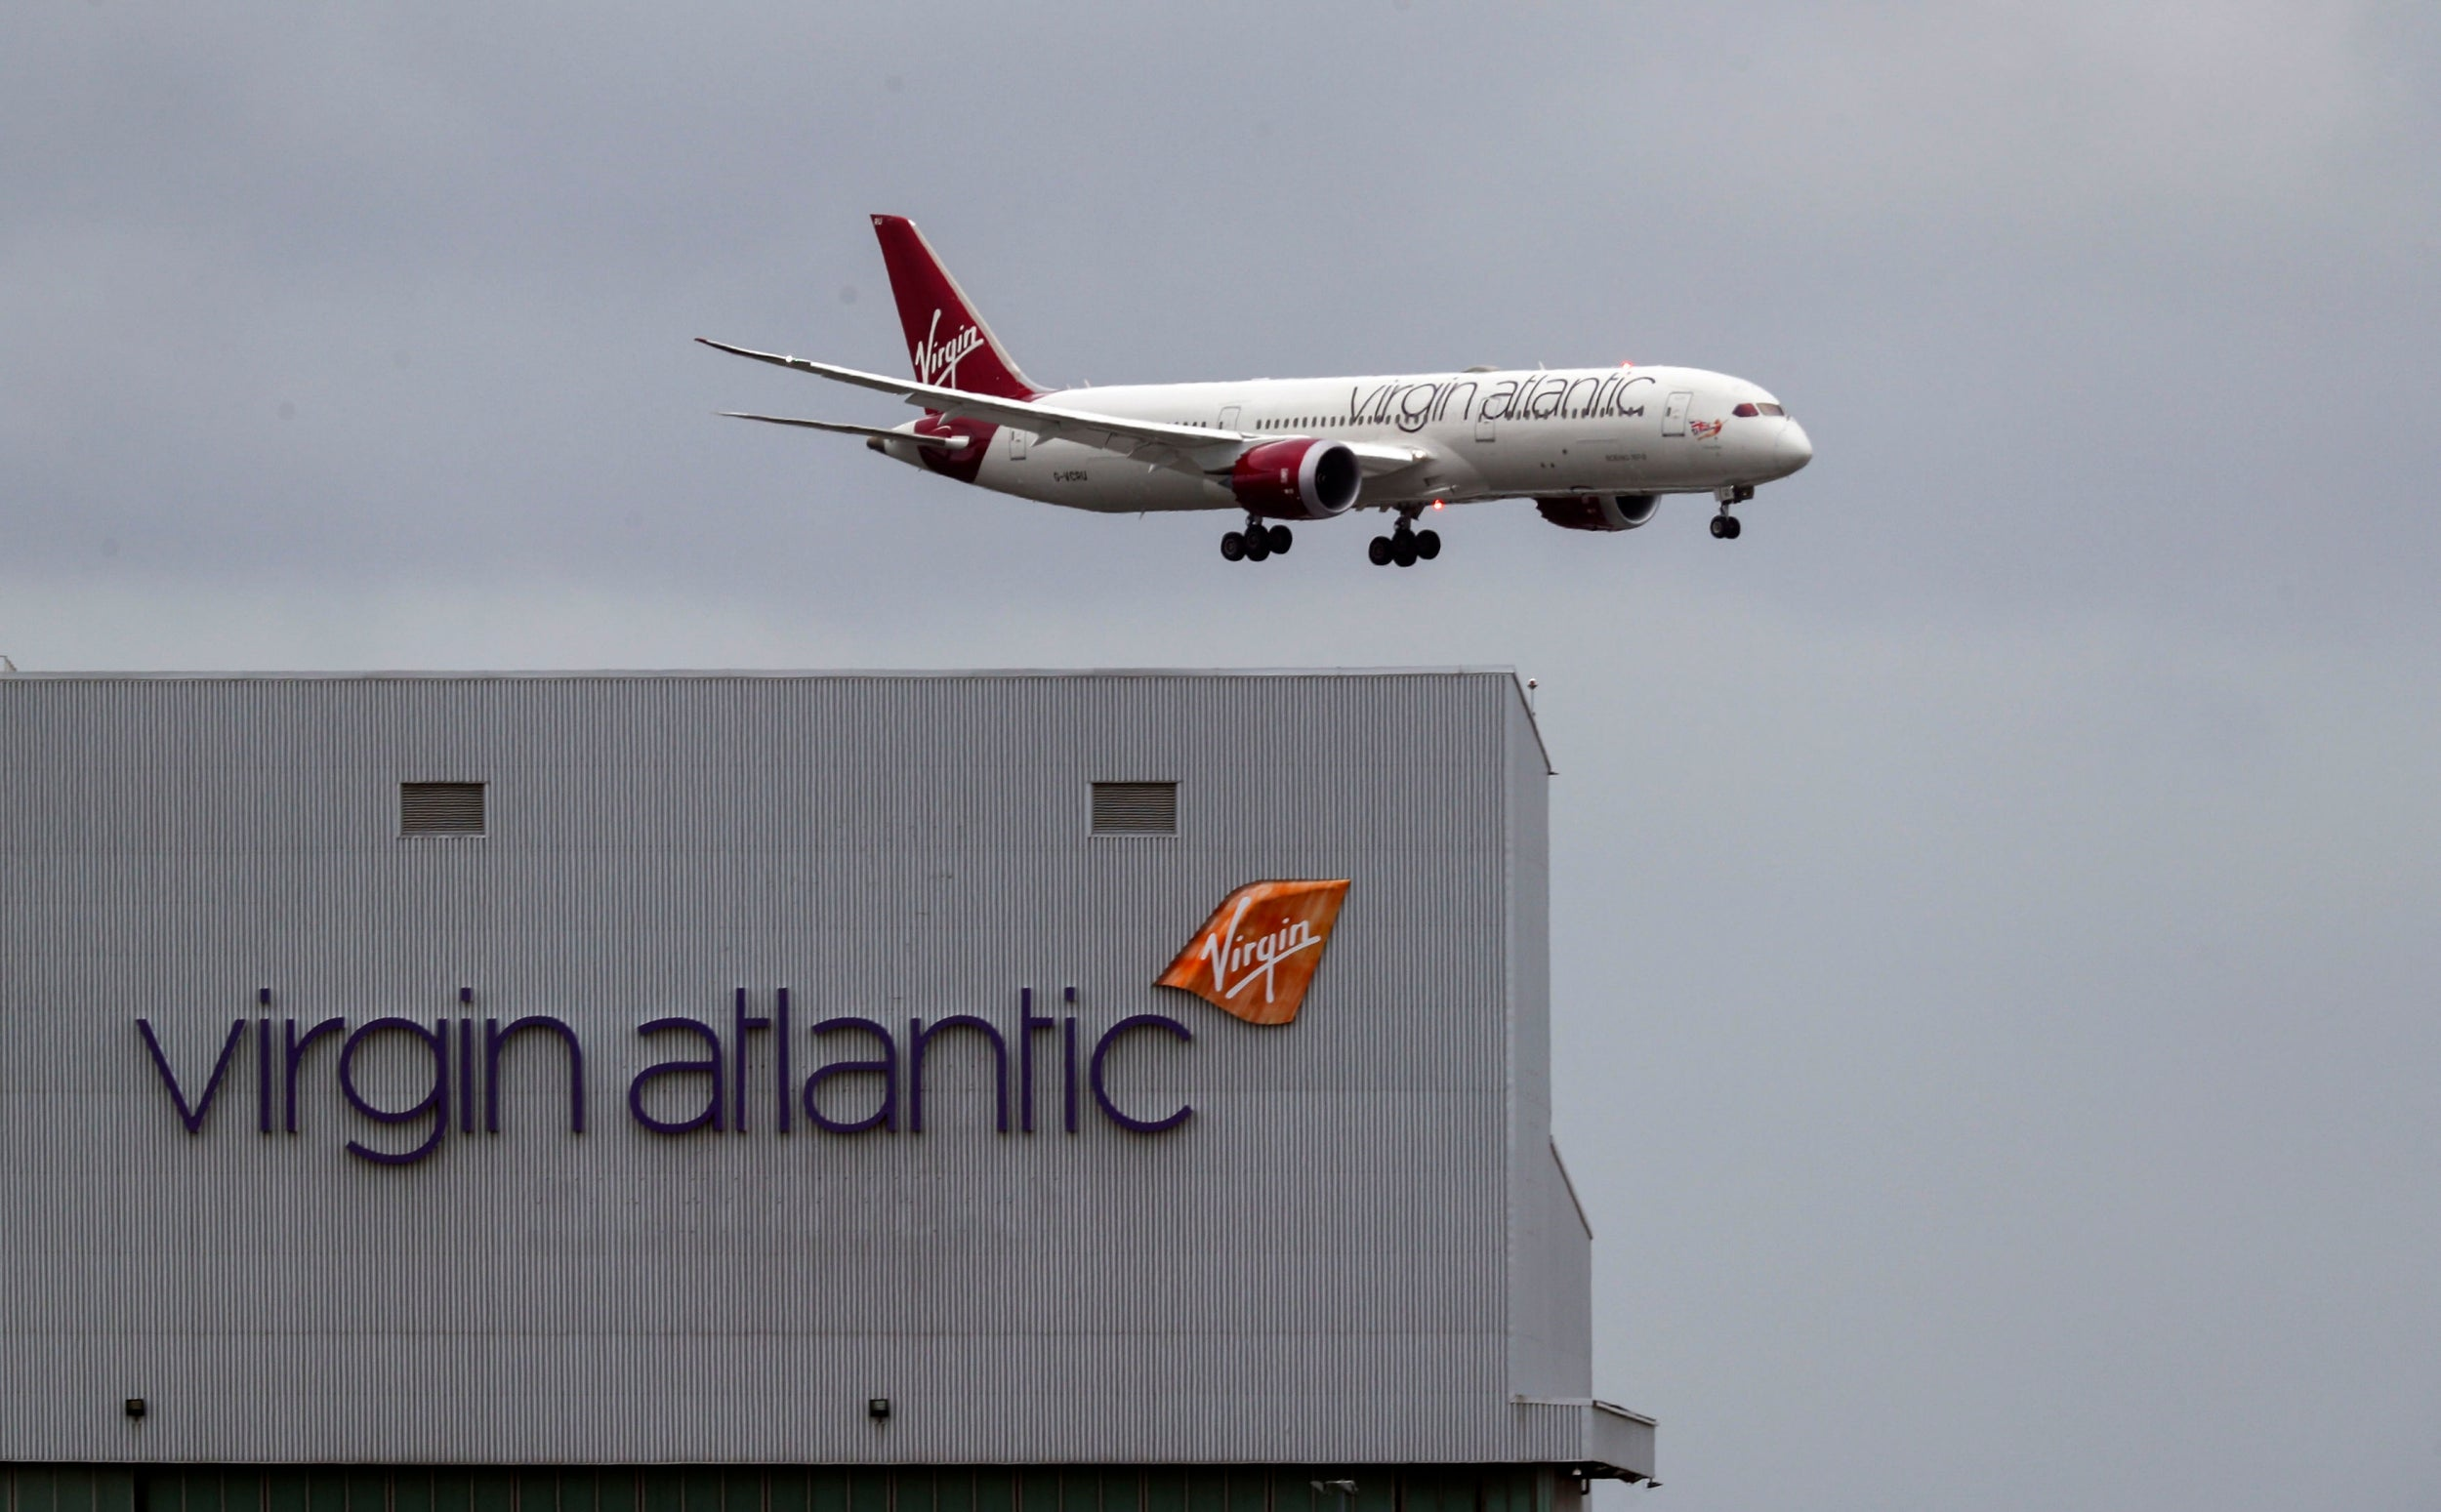 Virgin Atlantic: Things may look bad for aviation, but we will fly again